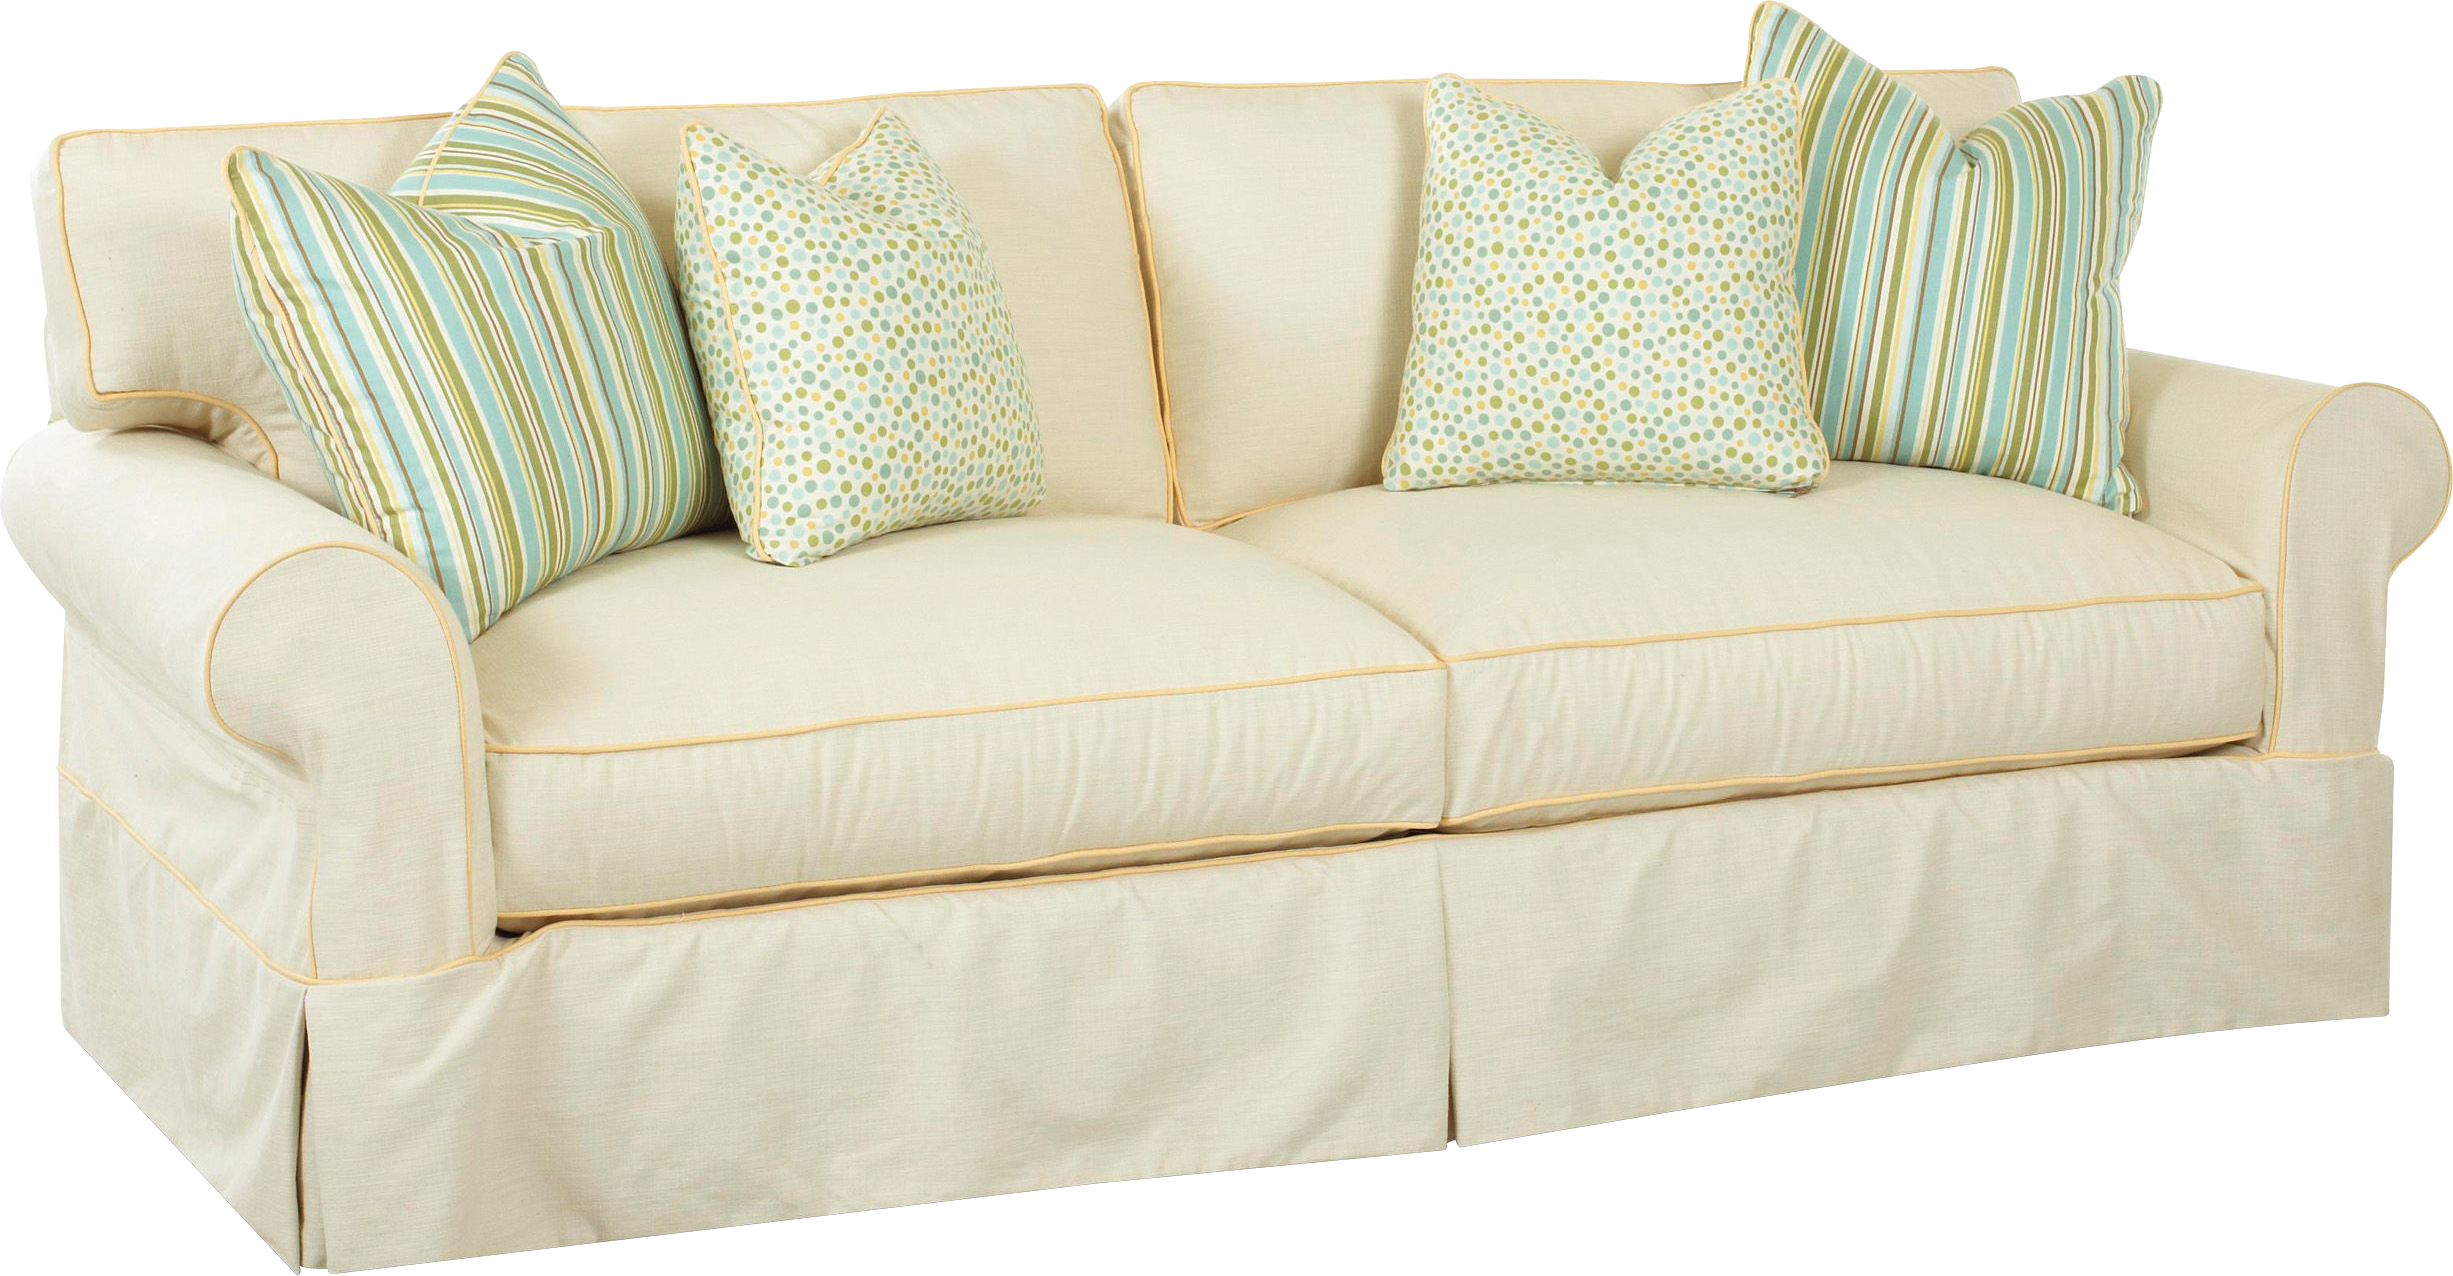 White sofa png image. Couch clipart sketch